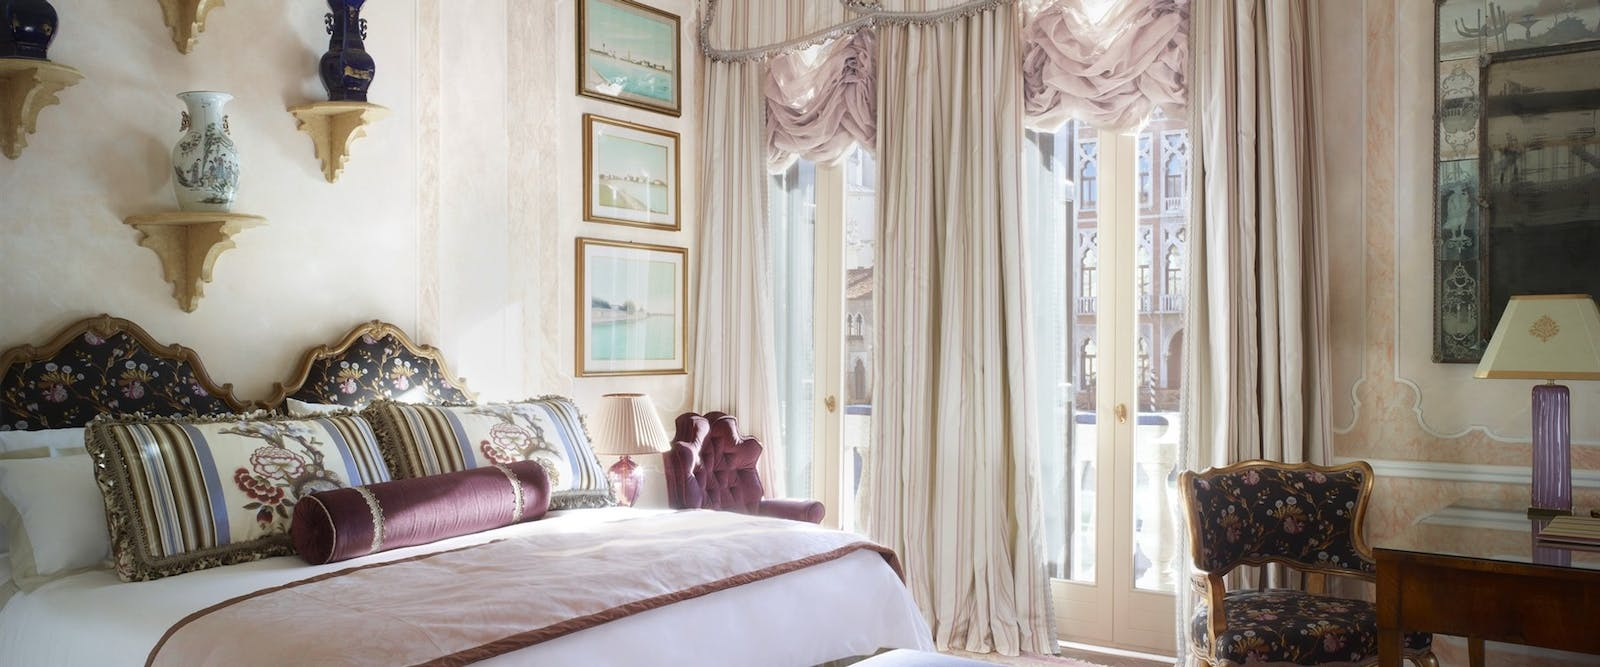 The Somerset Maugham Royal Suite at Gritti Palace, Venice, Italy